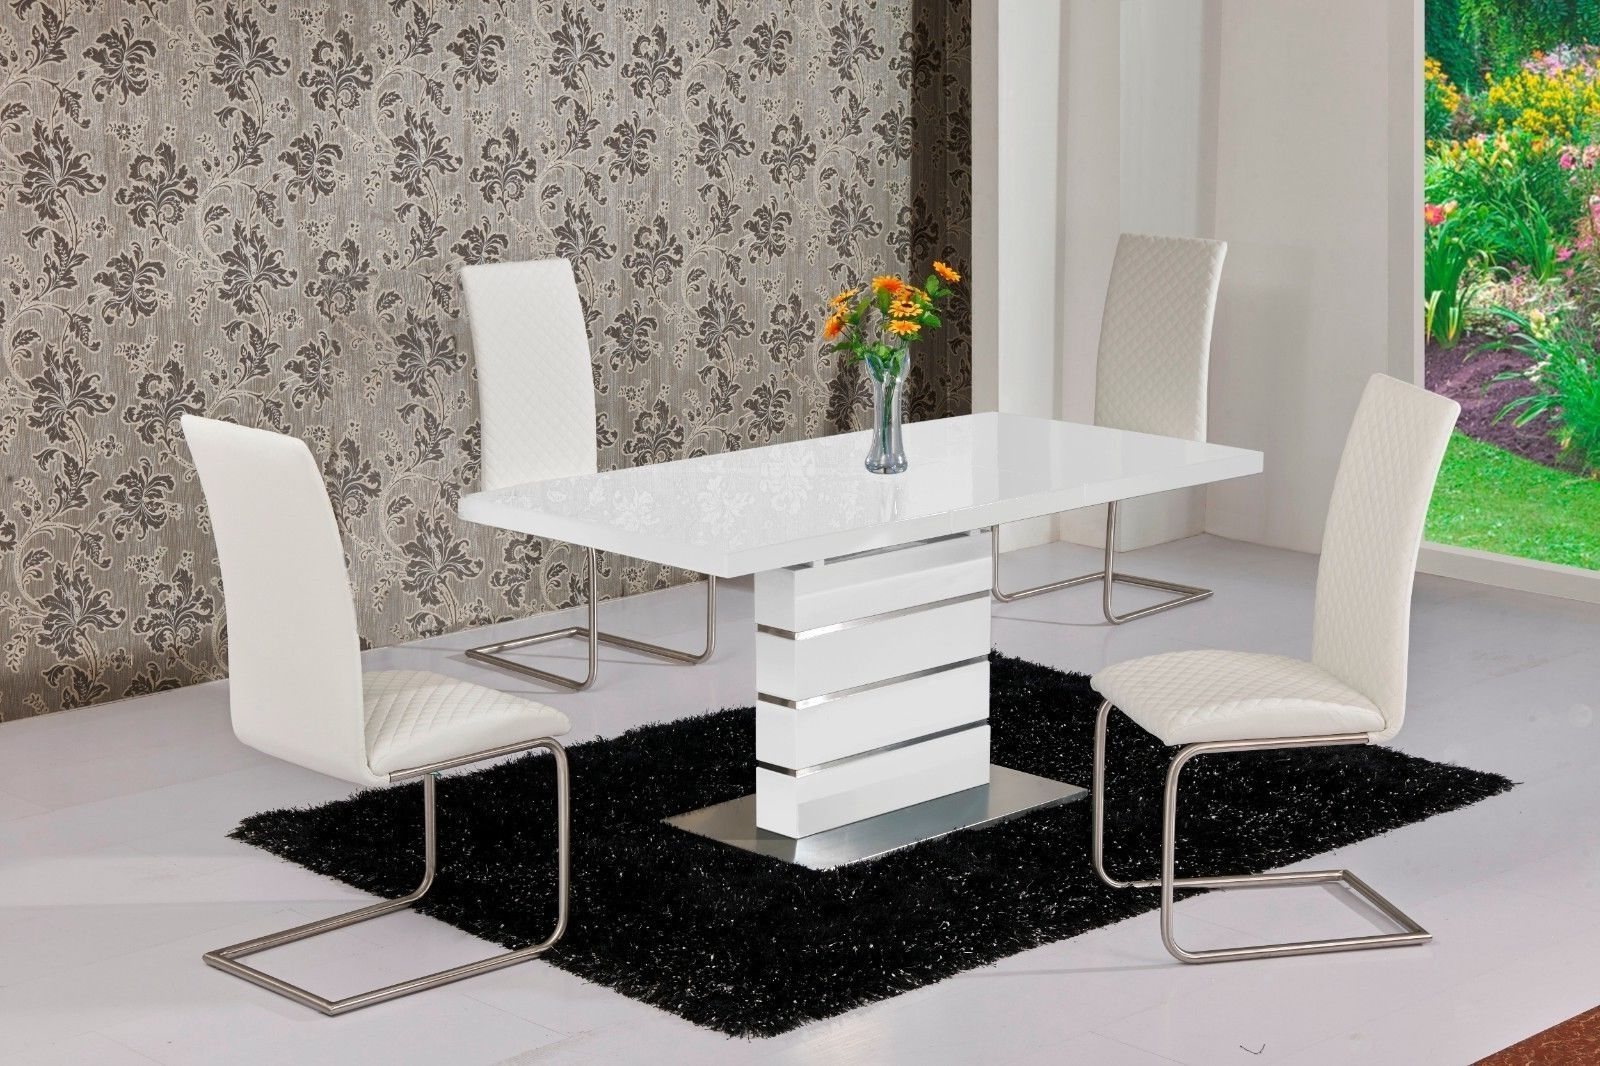 Well Known Mace High Gloss Extending 120 160 Dining Table & Chair Set – White With White Gloss Dining Room Tables (View 6 of 25)